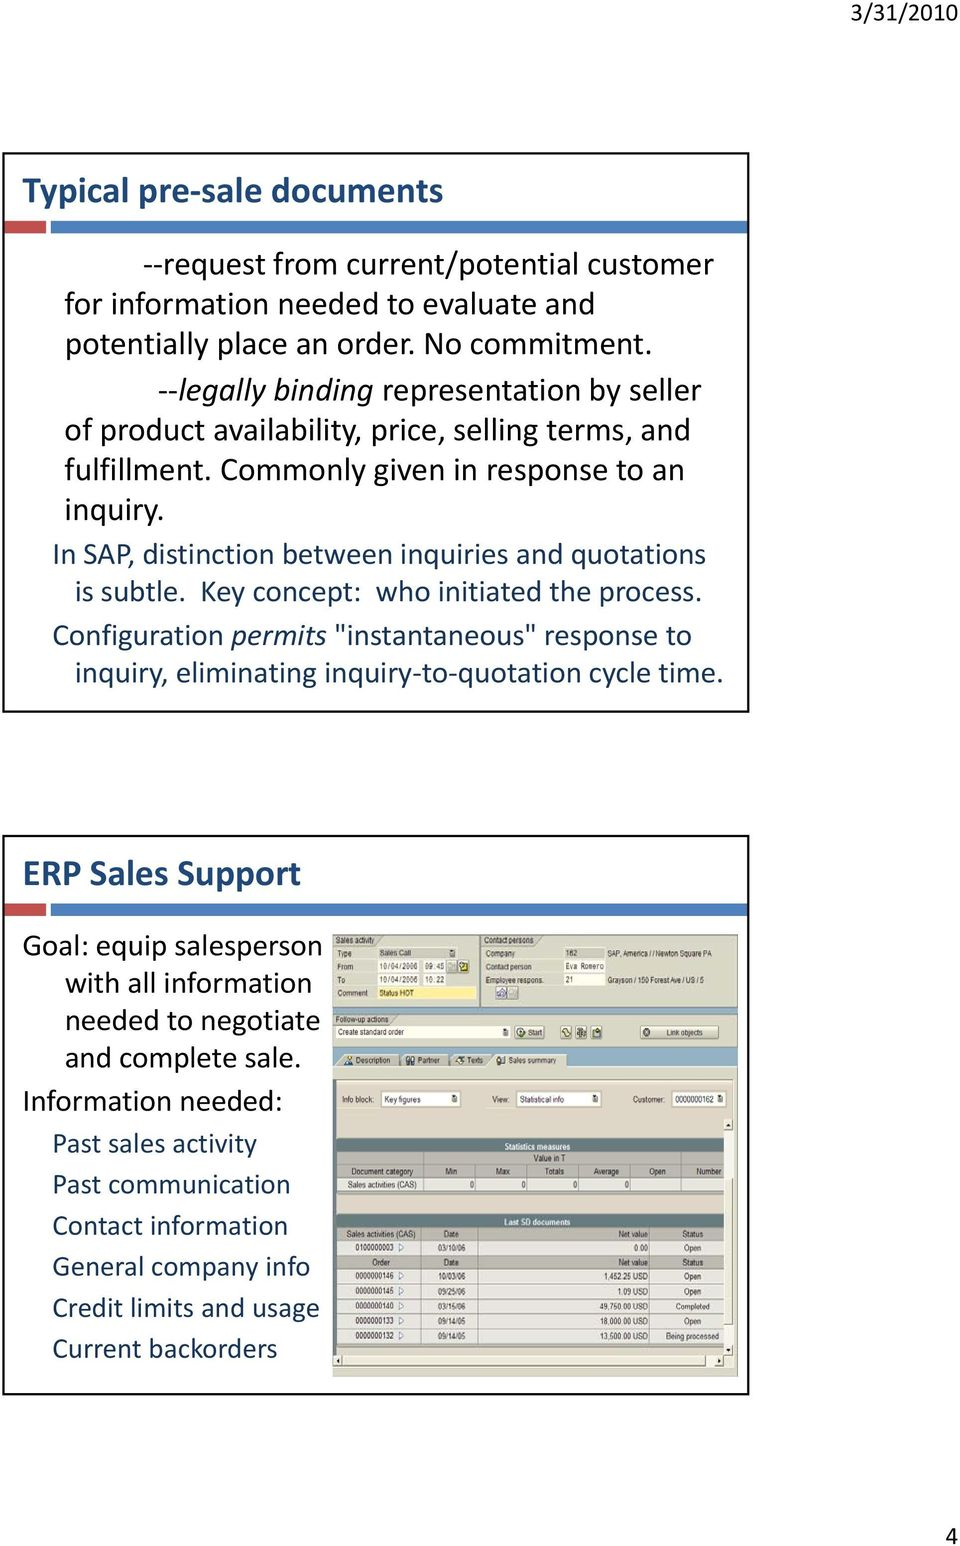 In SAP, distinction between inquiries and quotations is subtle. Key concept: who initiated the process.